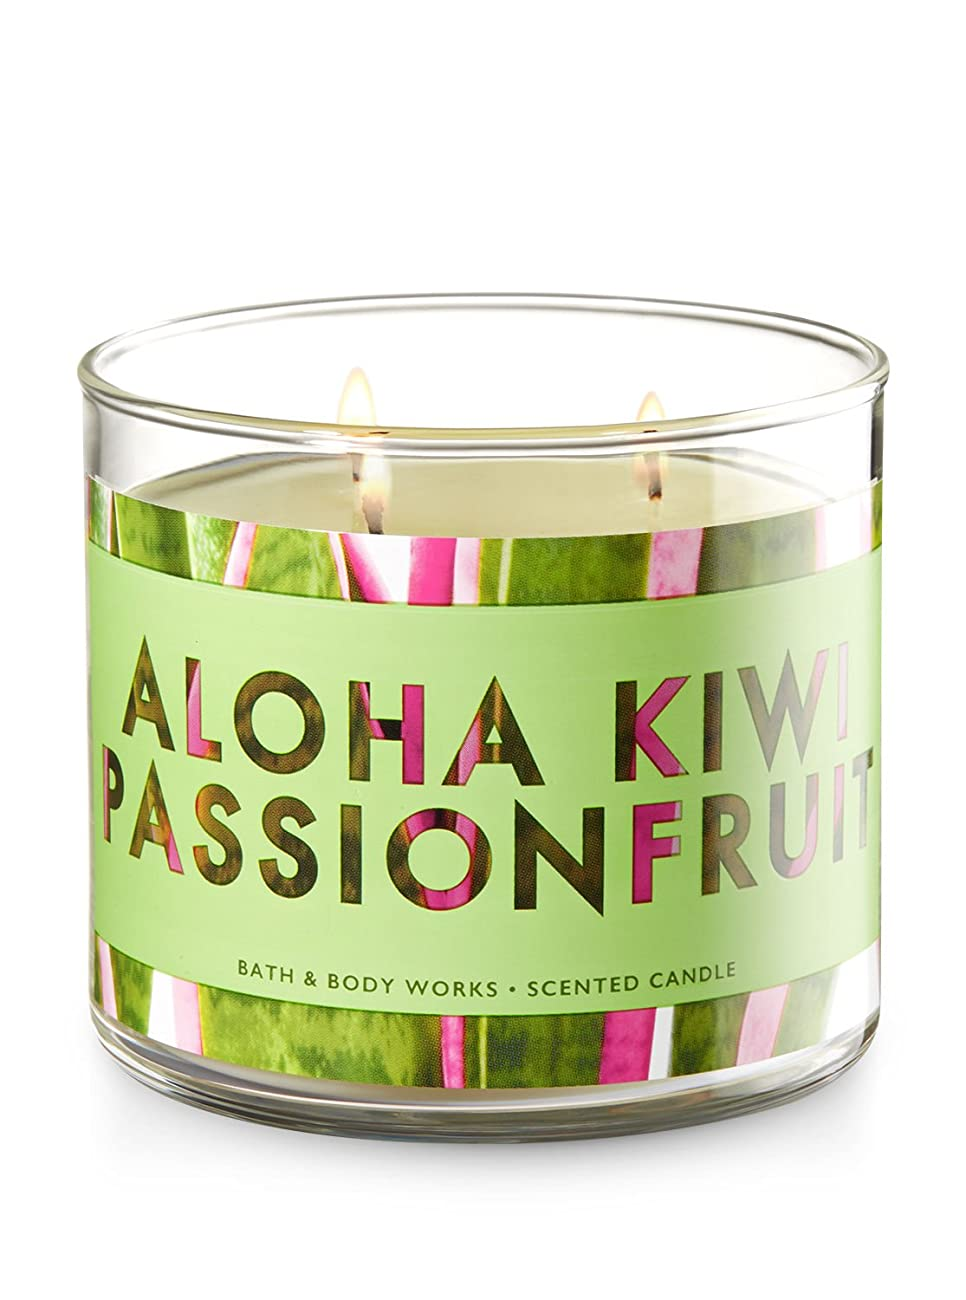 夢中離れて偽善Bath and Body Works 3 Wick Scented Candle Aloha Kiwi Passionfruit 430ml